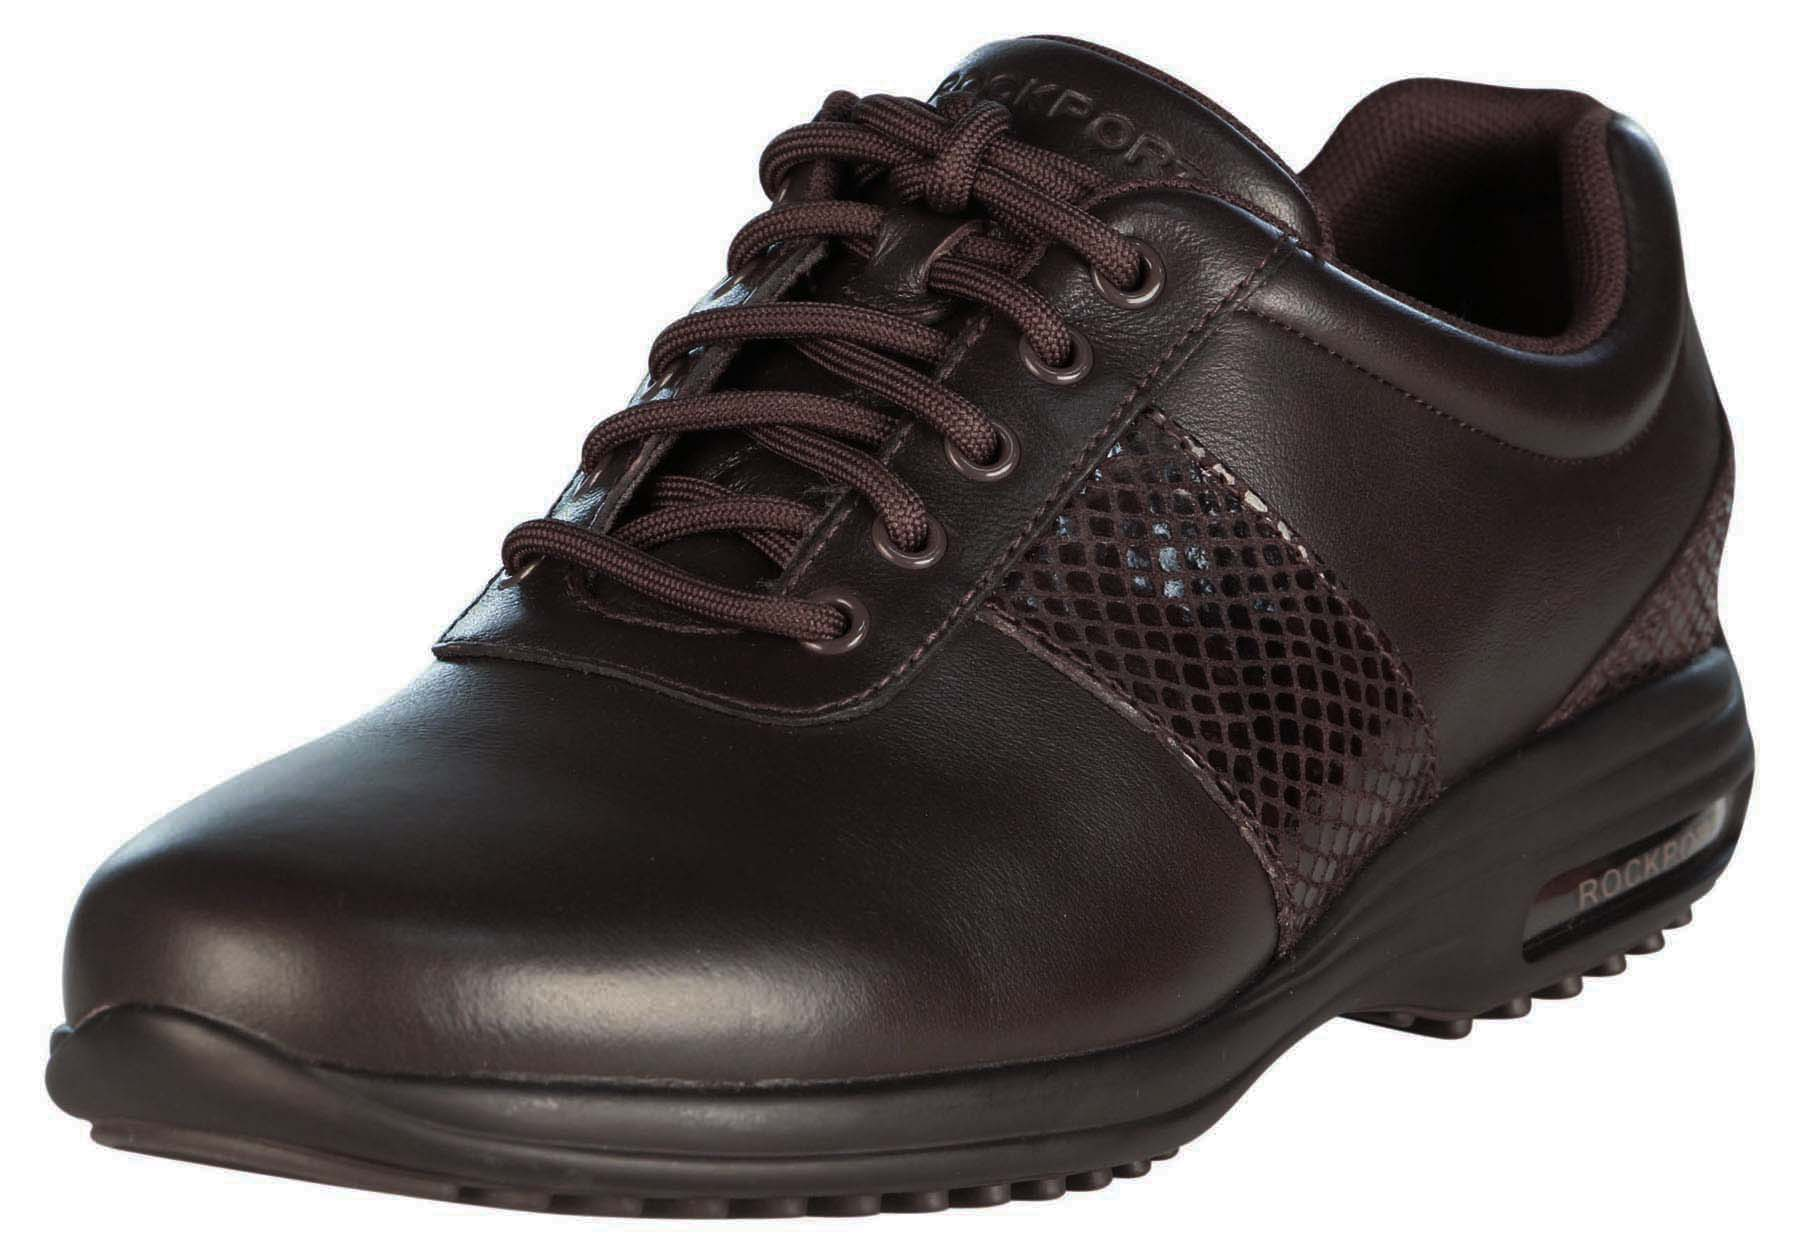 Rockport Men's City Routes Panel Plain Toe Shoe-Dark Bitter Chocolate by Rockport